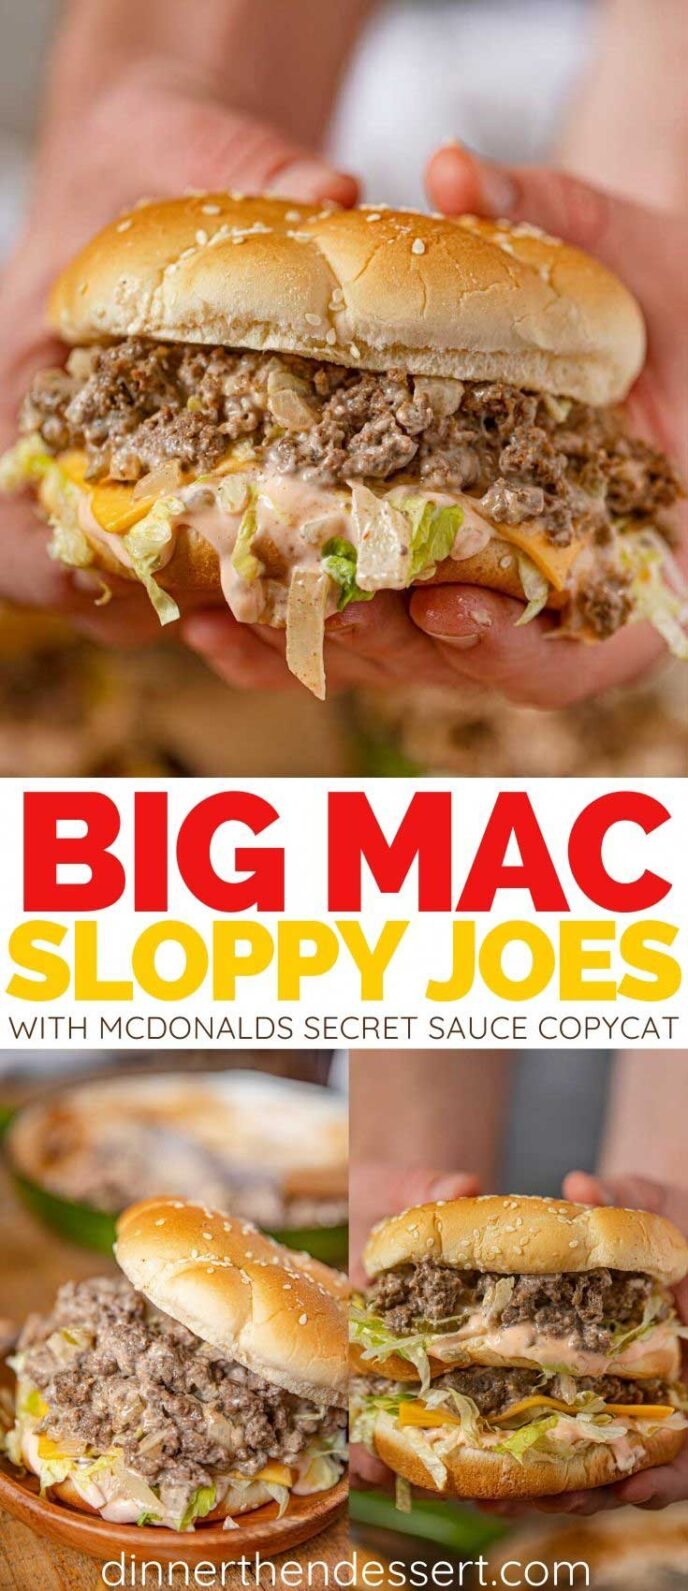 Big Mac Sloppy Joes collage